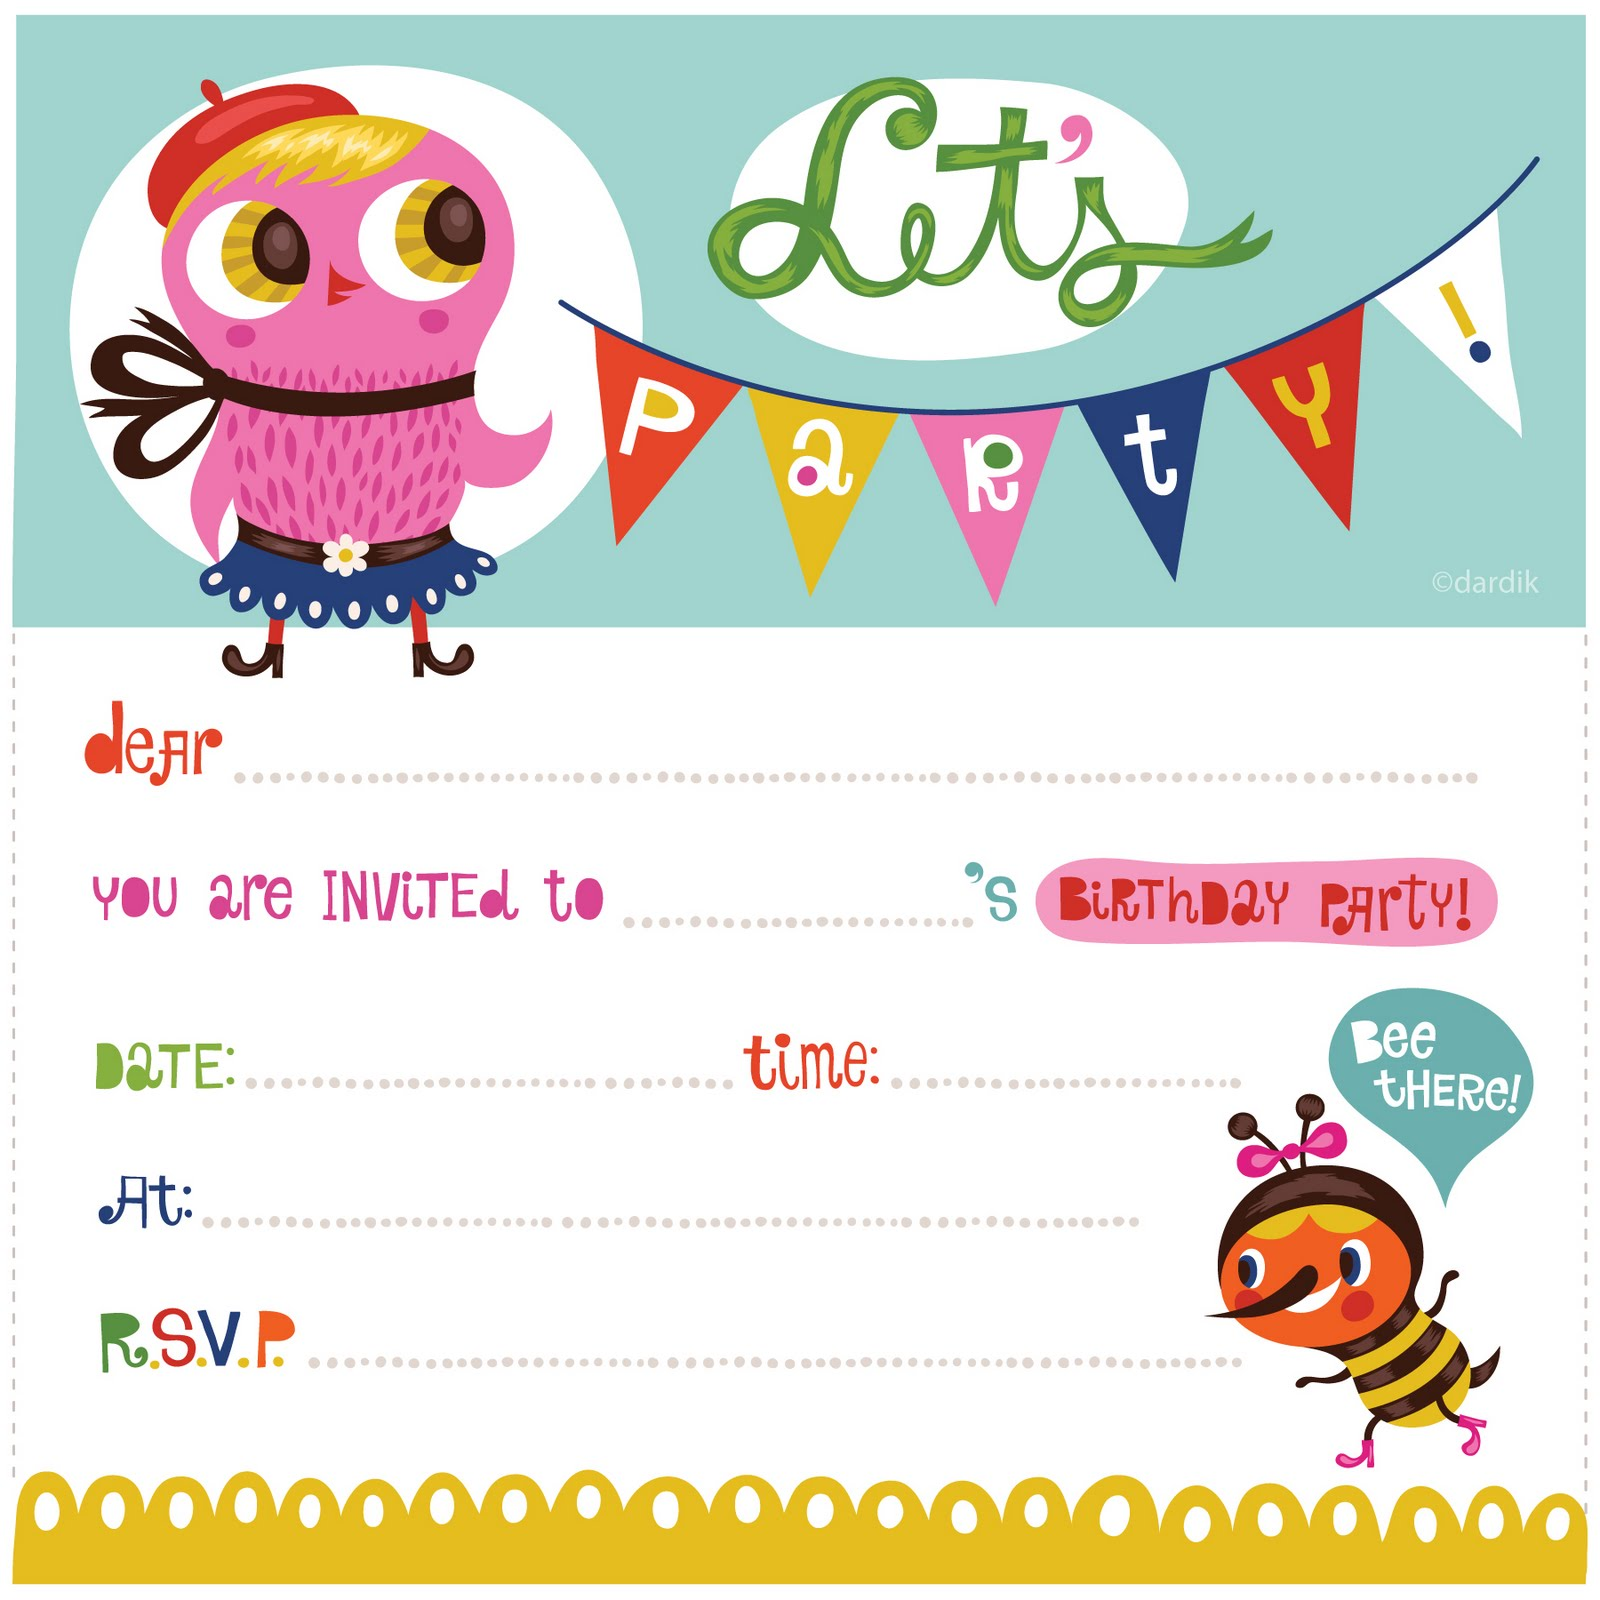 Kids Invitation Template. Kids 39 Party Invites By Esther Aarts ...